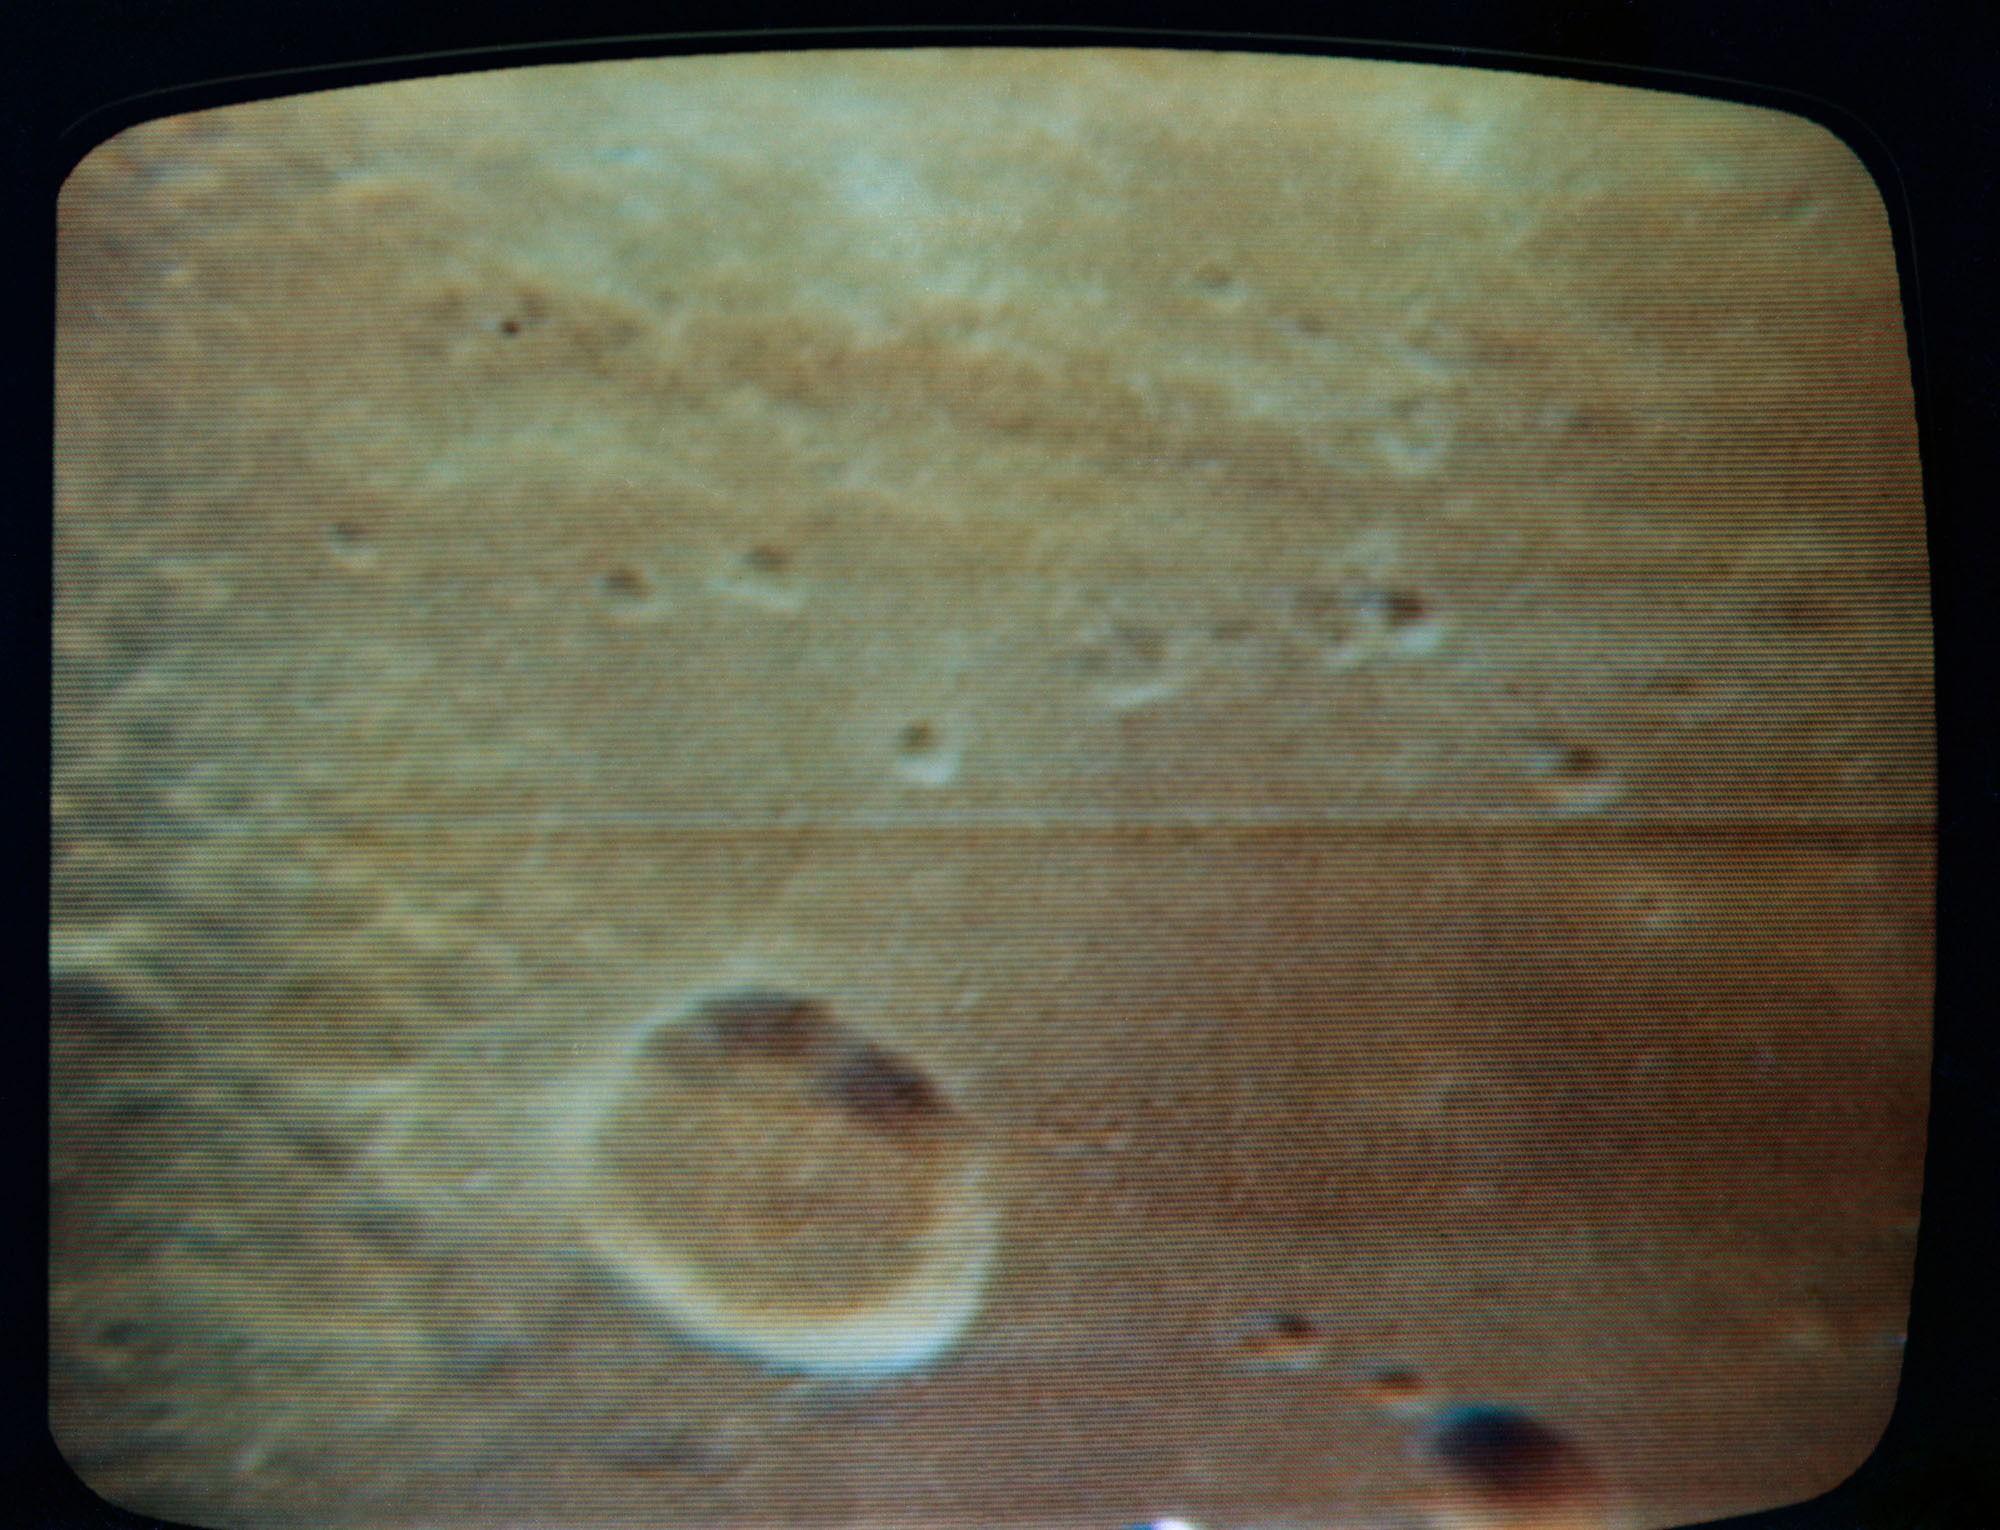 Apollo 11 Flight Log, July 19, 1969: Live TV from near the Moon